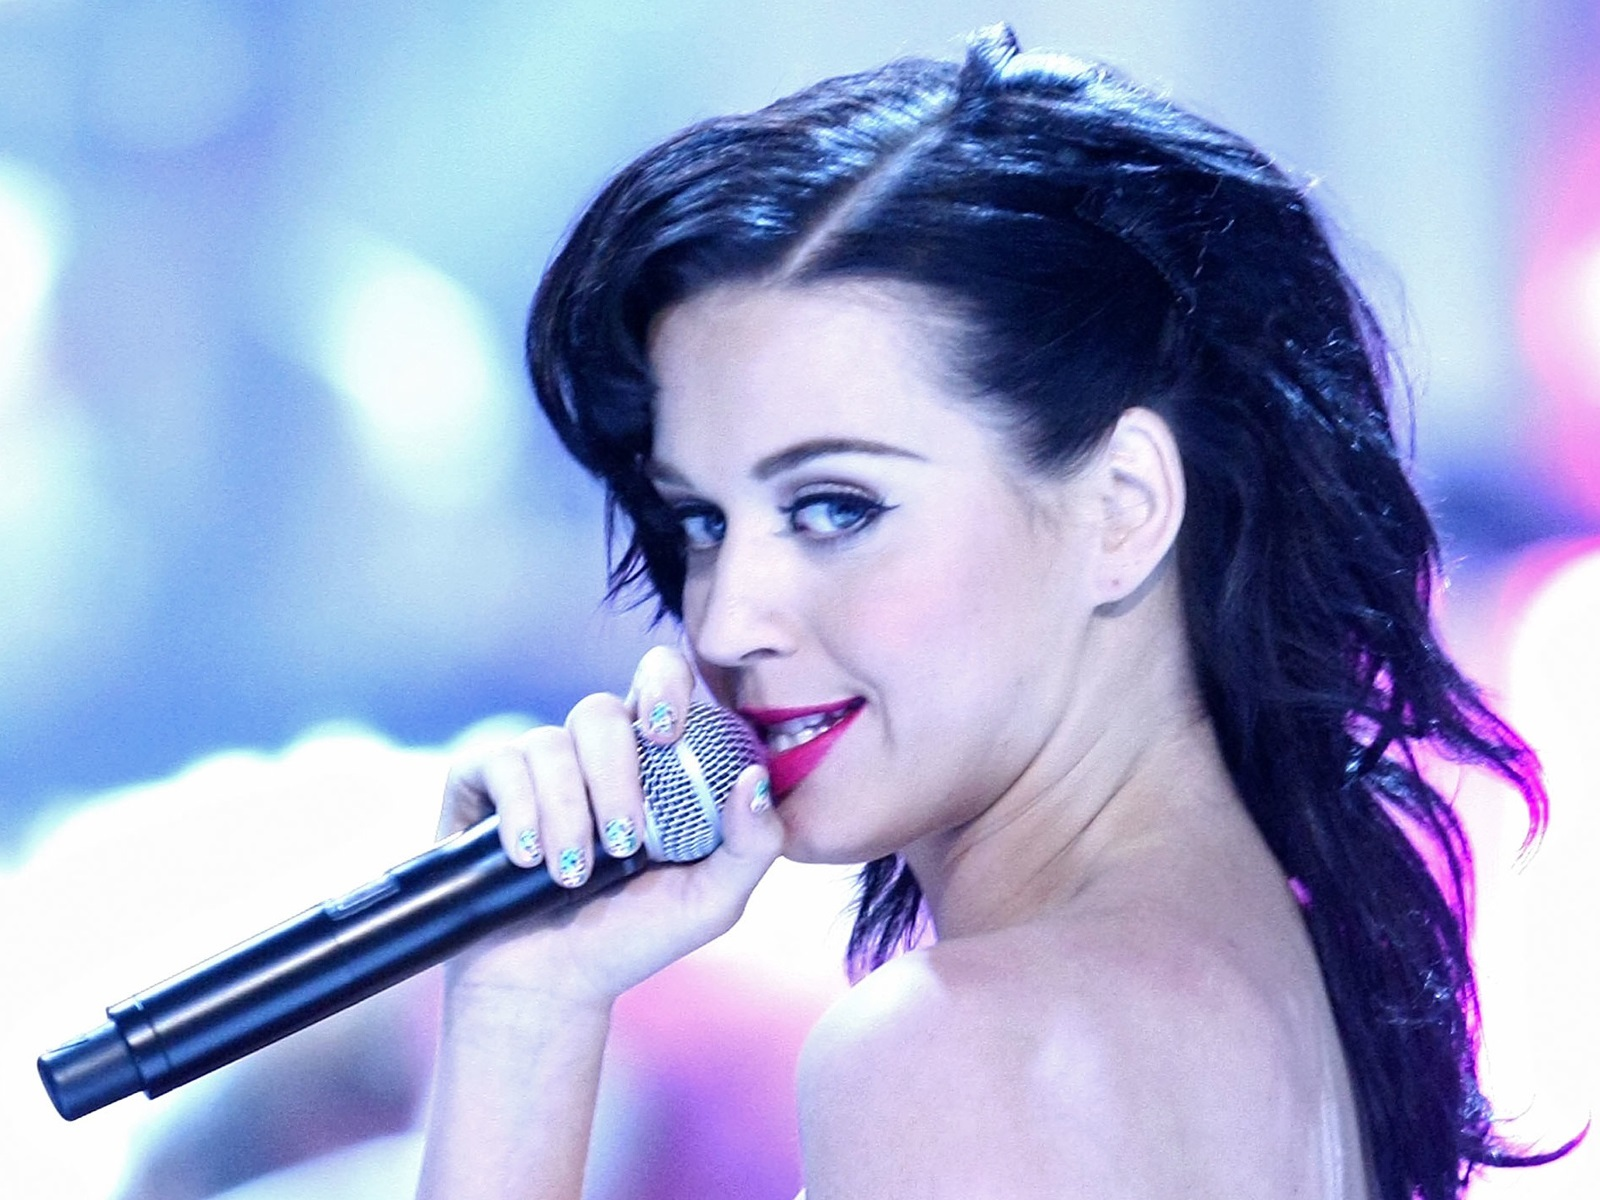 Katy Perry Wallpaper 49